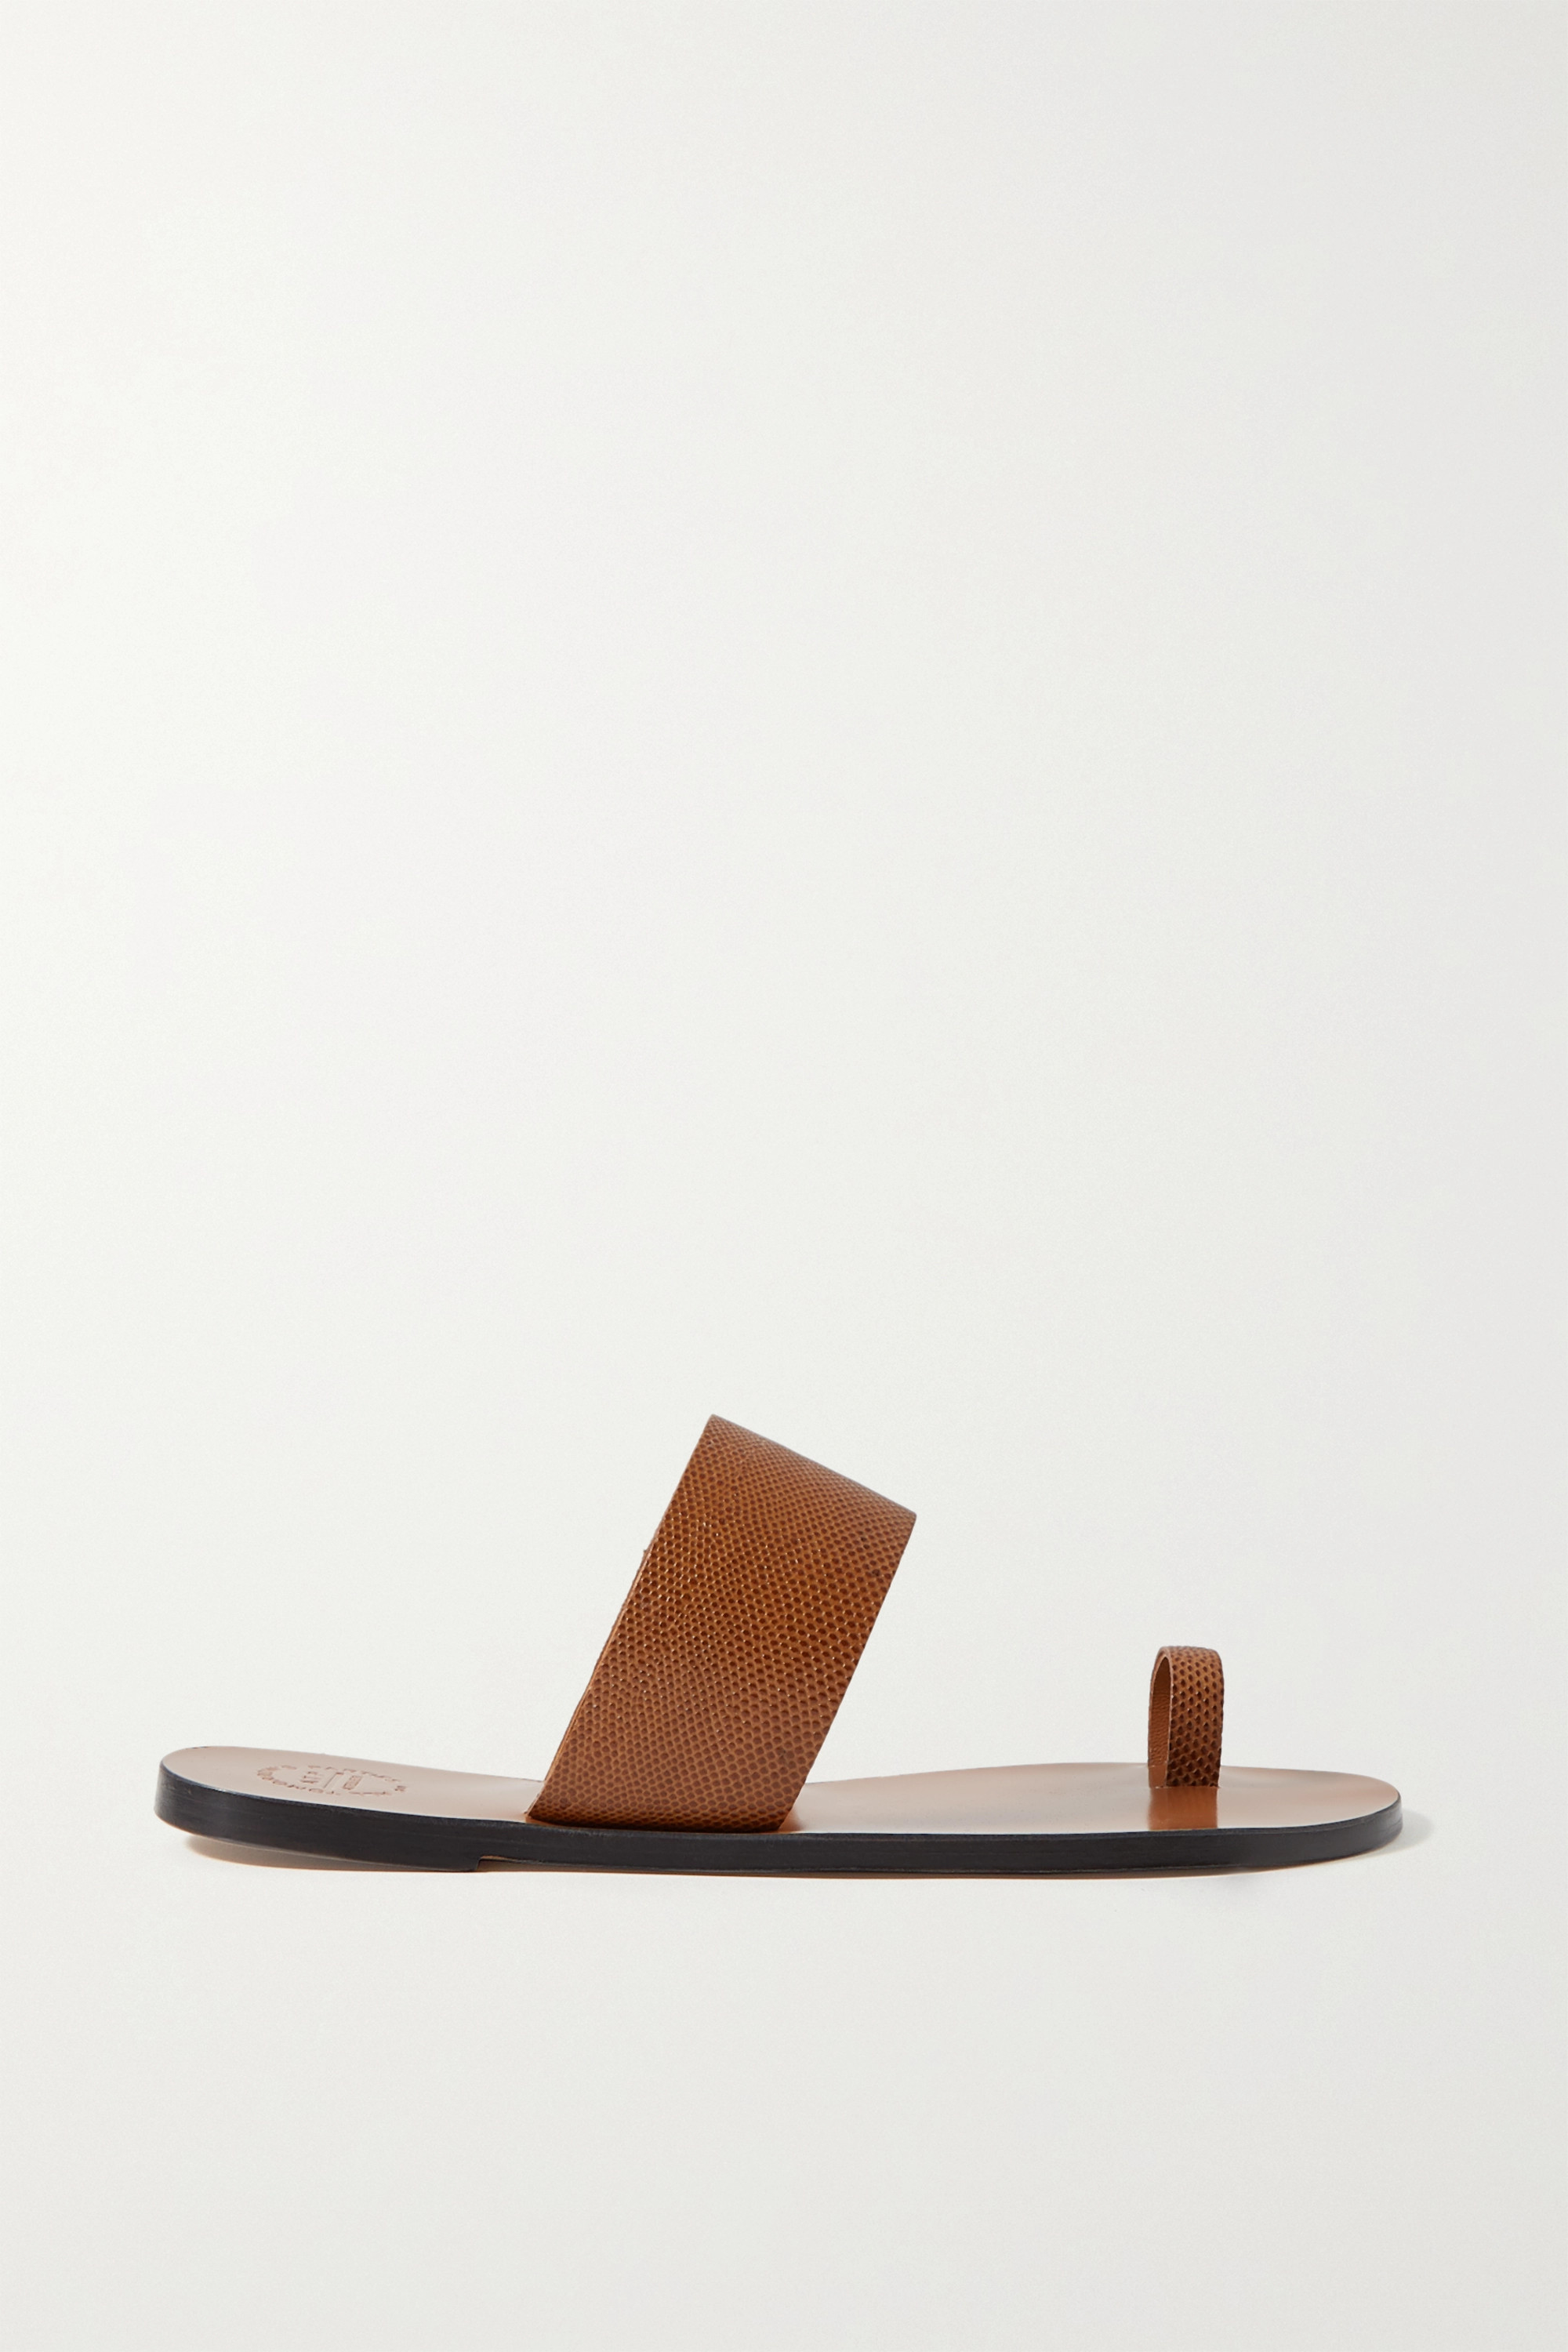 ATP Atelier Astrid lizard-effect leather sandals